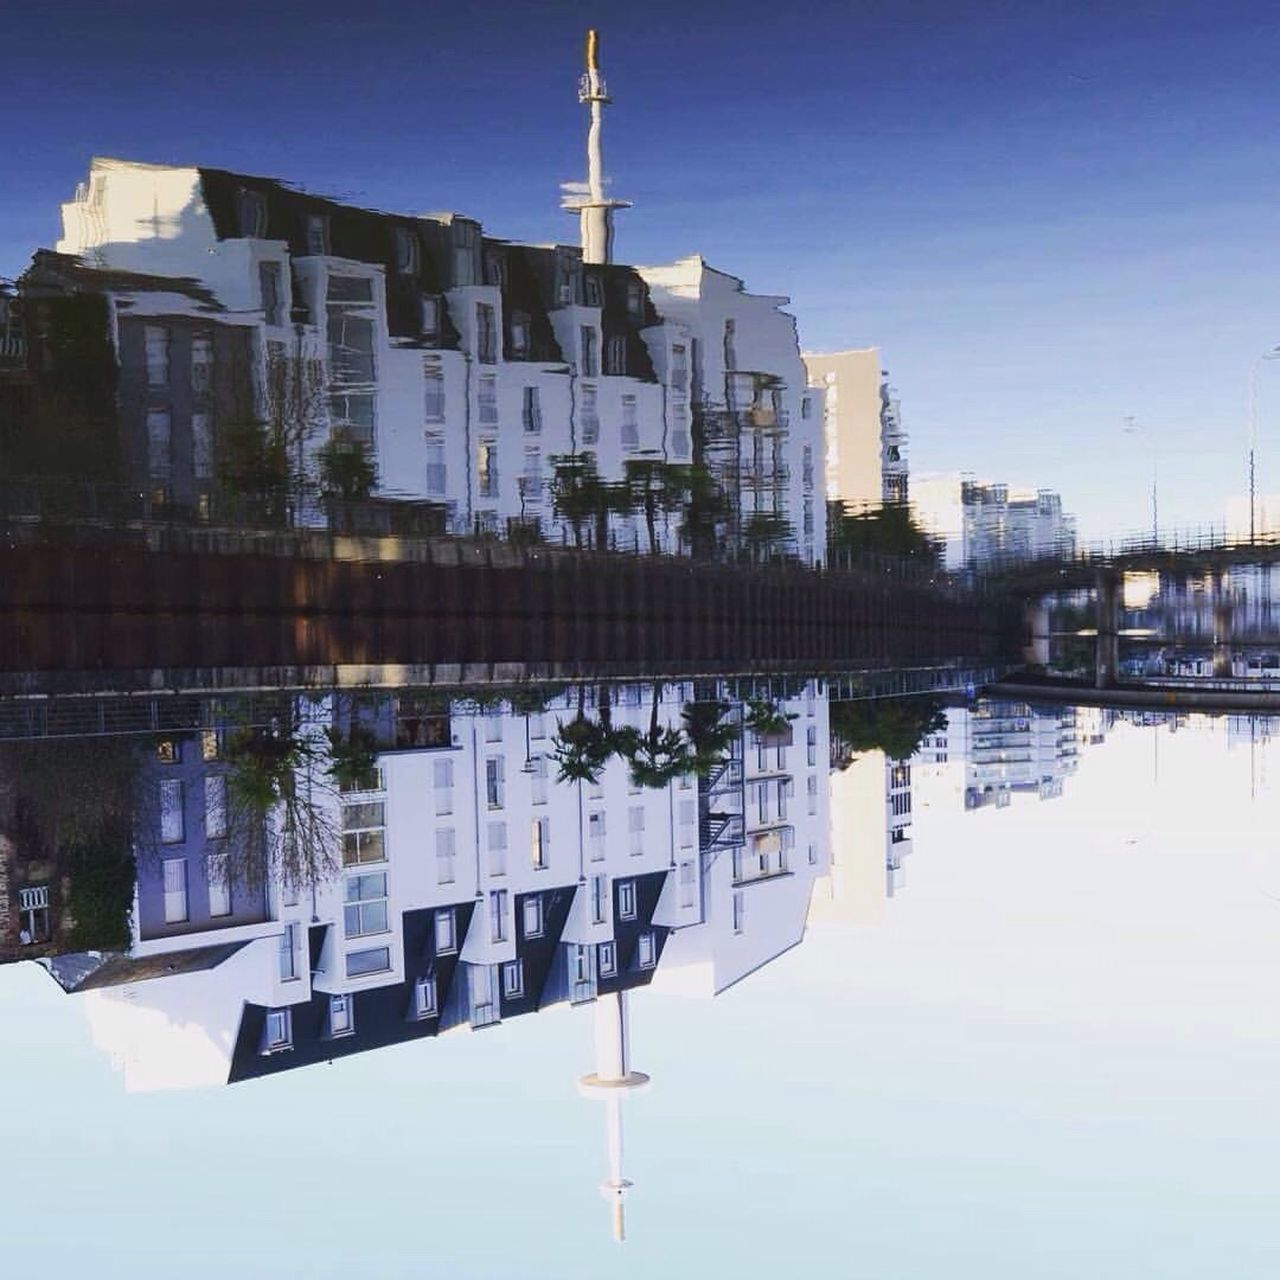 reflection, architecture, water, building exterior, built structure, outdoors, waterfront, clear sky, no people, day, sky, nature, city